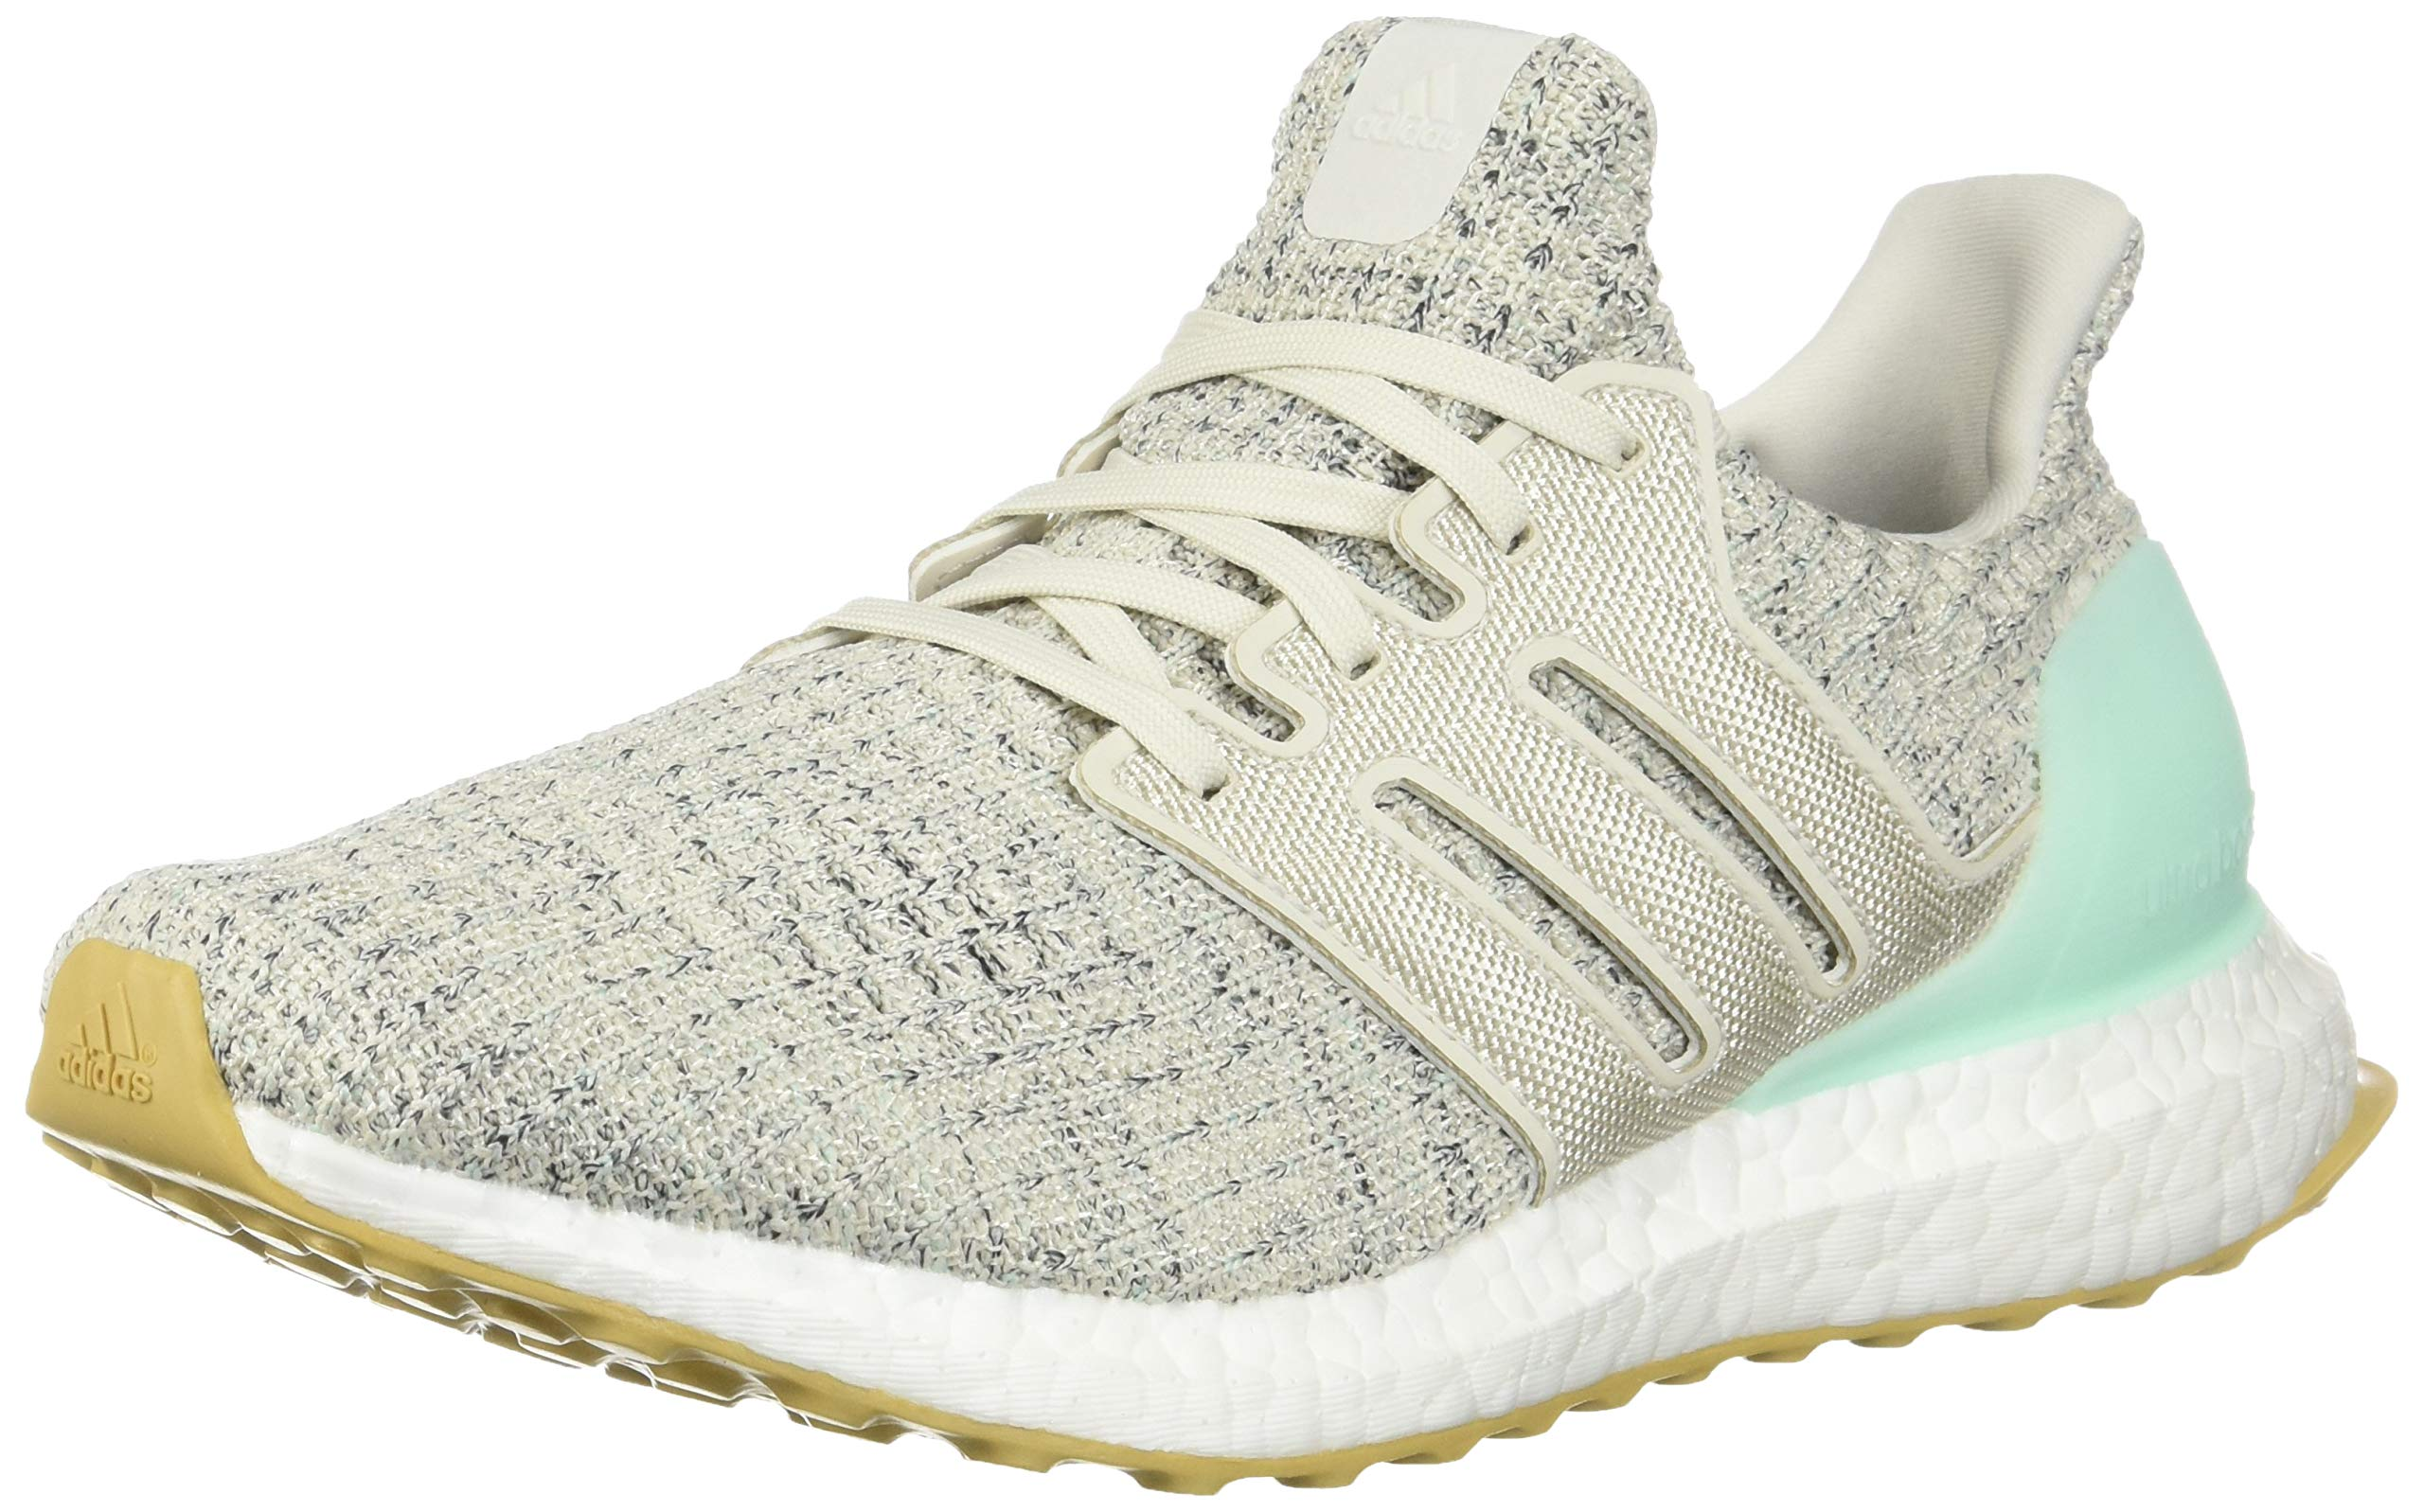 adidas Women's Ultraboost, Clear Mint/raw White/Carbon, 5 M US